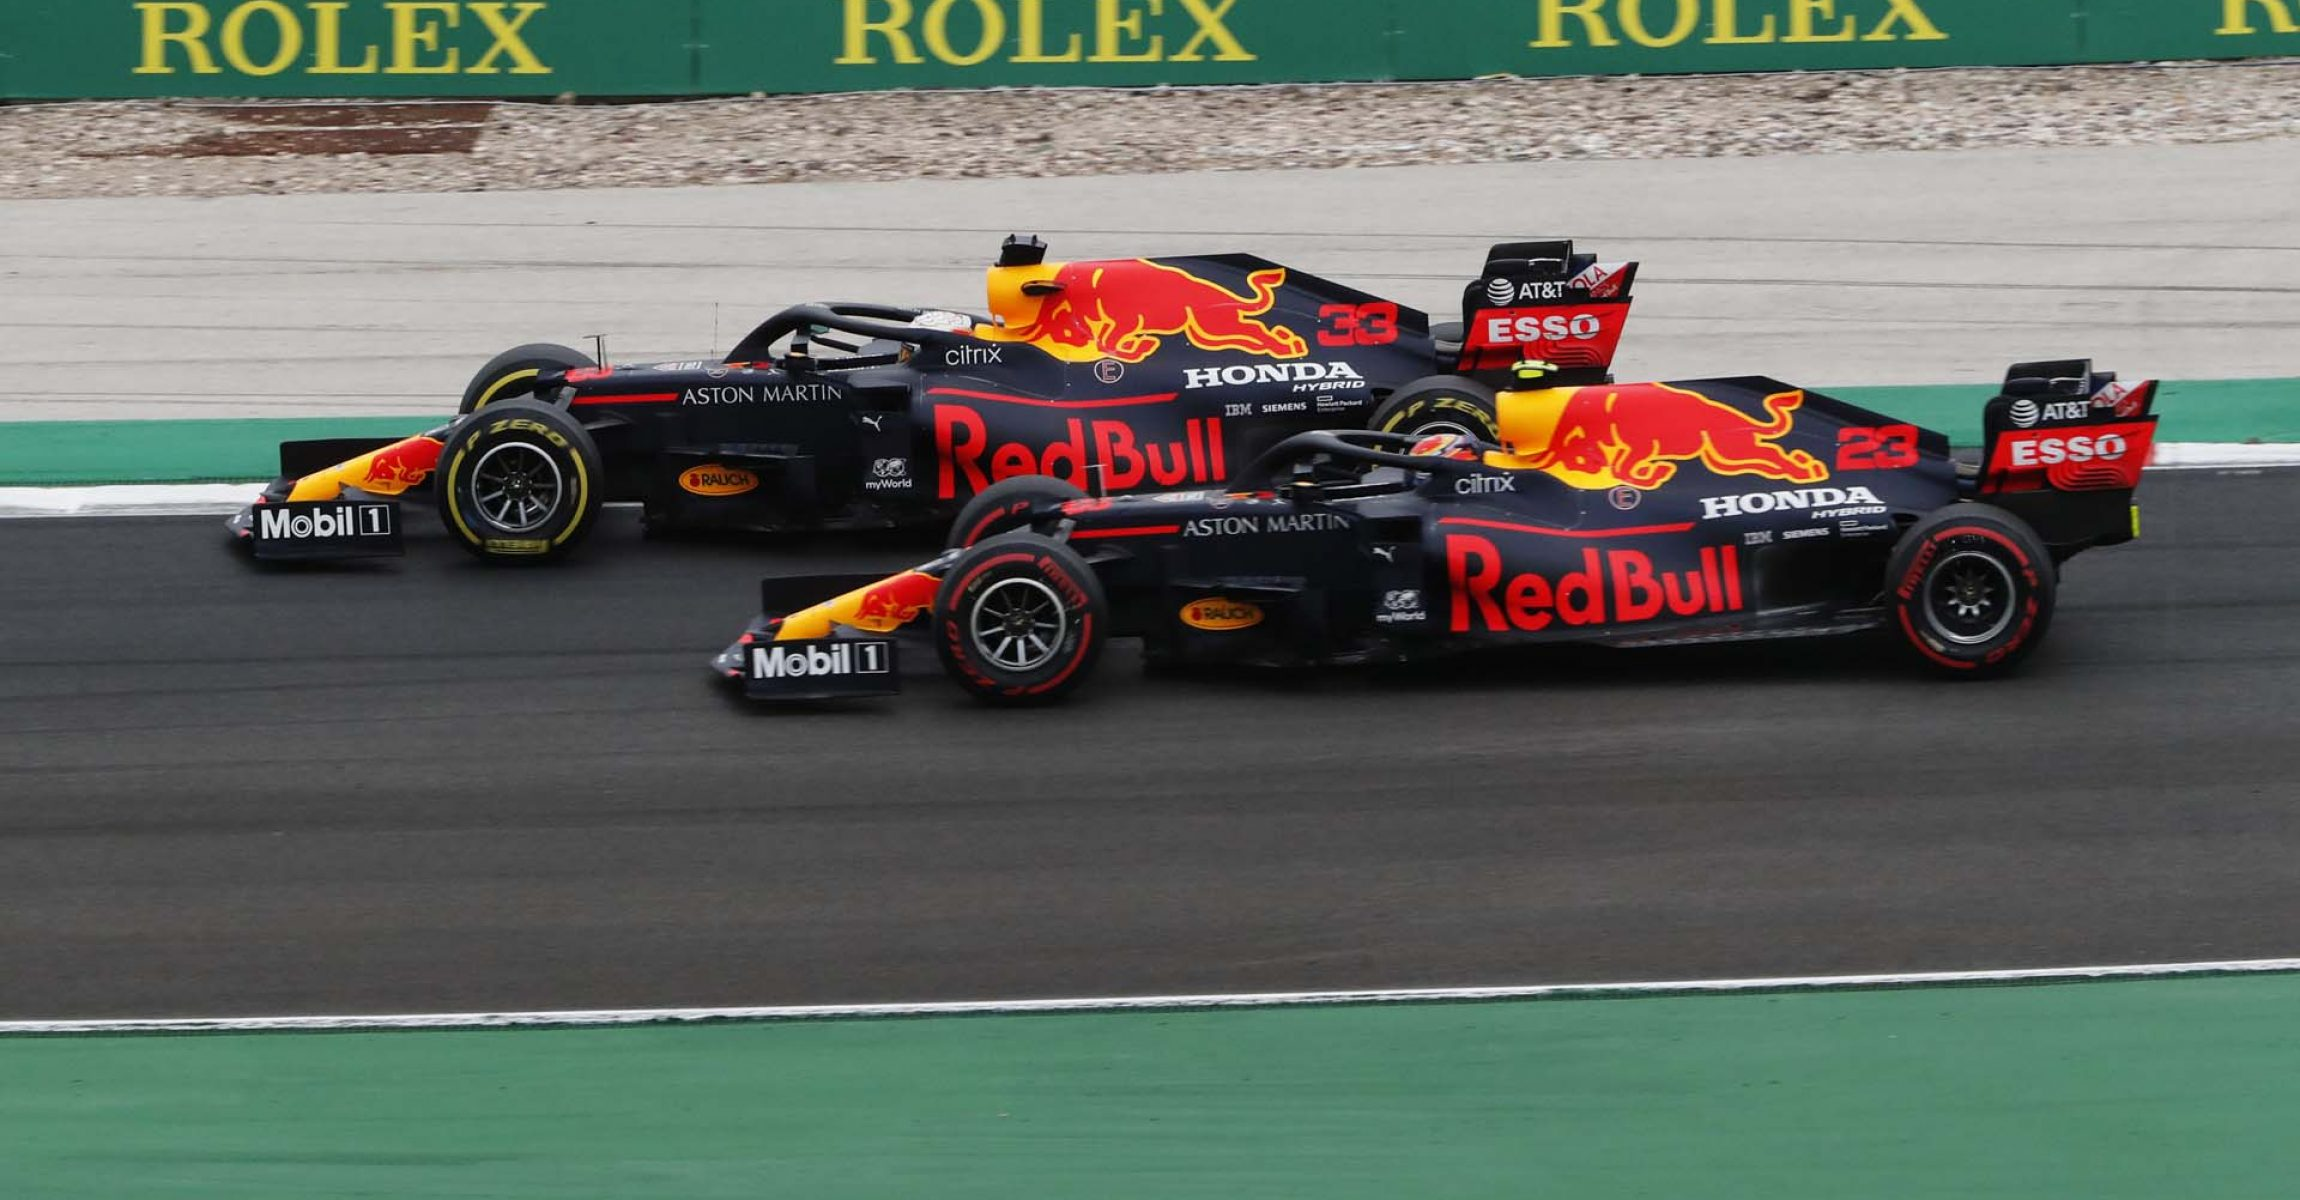 PORTIMAO, PORTUGAL - OCTOBER 25: Max Verstappen of the Netherlands driving the (33) Aston Martin Red Bull Racing RB16 and Alexander Albon of Thailand driving the (23) Aston Martin Red Bull Racing RB16 battle for position on track during the F1 Grand Prix of Portugal at Autodromo Internacional do Algarve on October 25, 2020 in Portimao, Portugal. (Photo by Armando Franca - Pool/Getty Images)